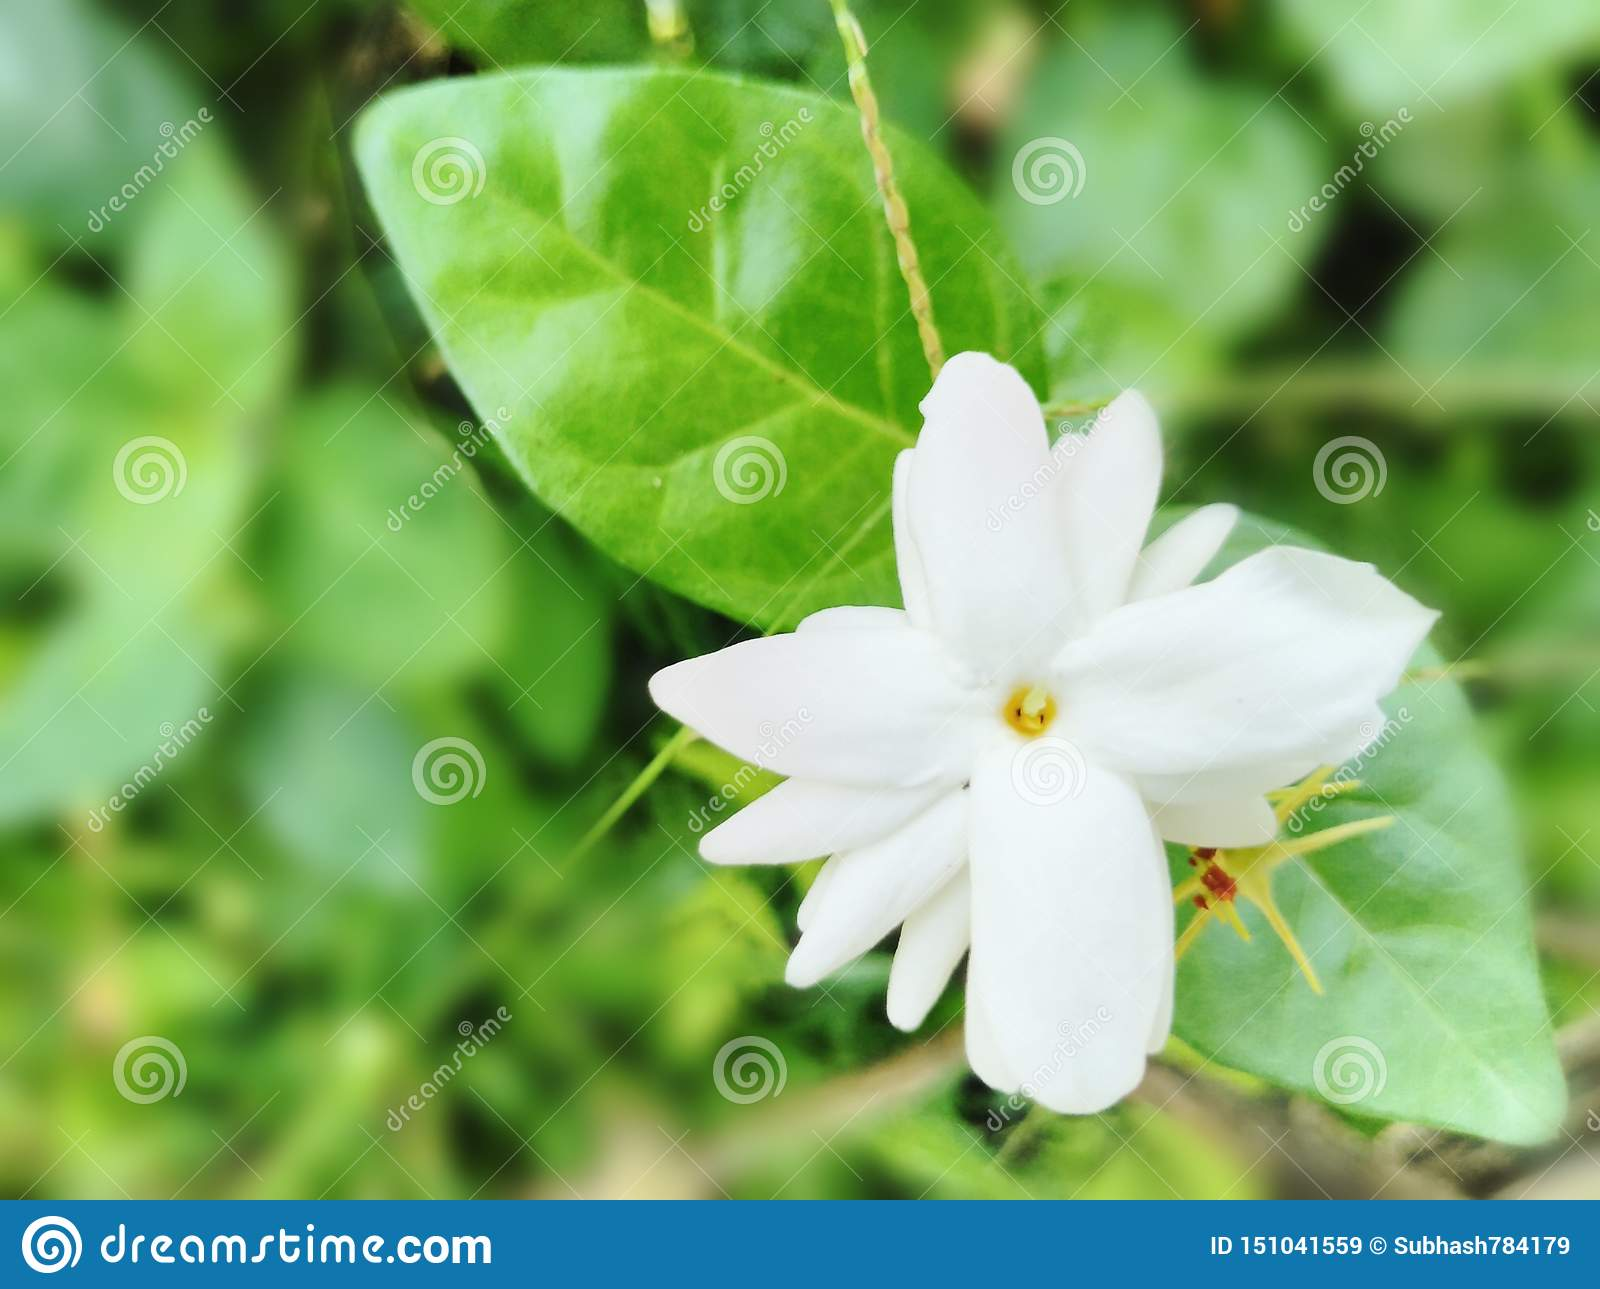 Beautiful Garden White Jasmine Flower Background Wallpaper Picture Stock Image Image Of Flower Colours 151041559